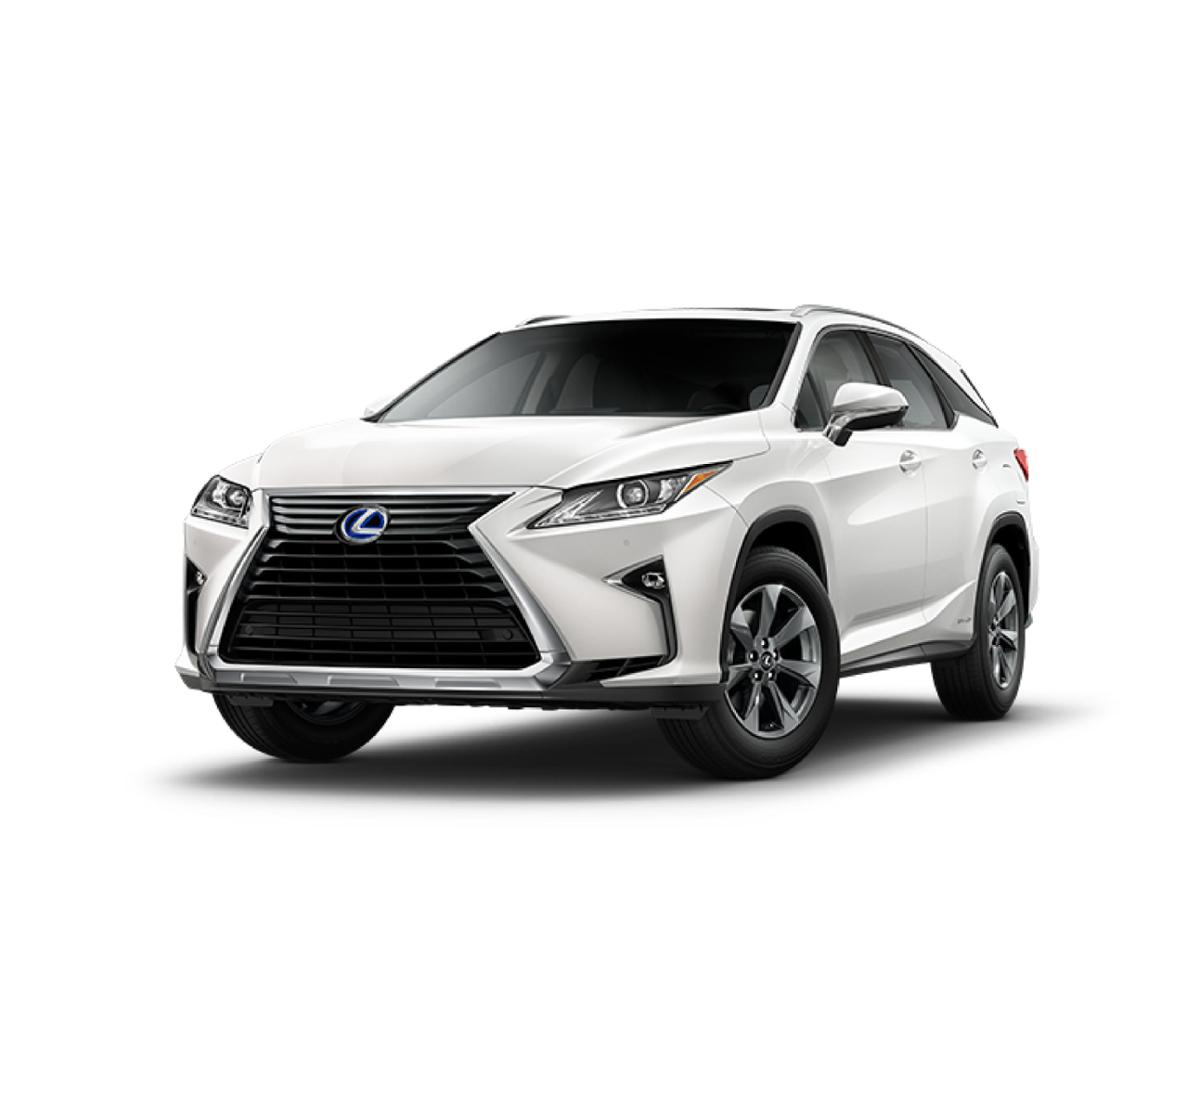 2019 Lexus RX 450hL Vehicle Photo in Sacramento, CA 95821